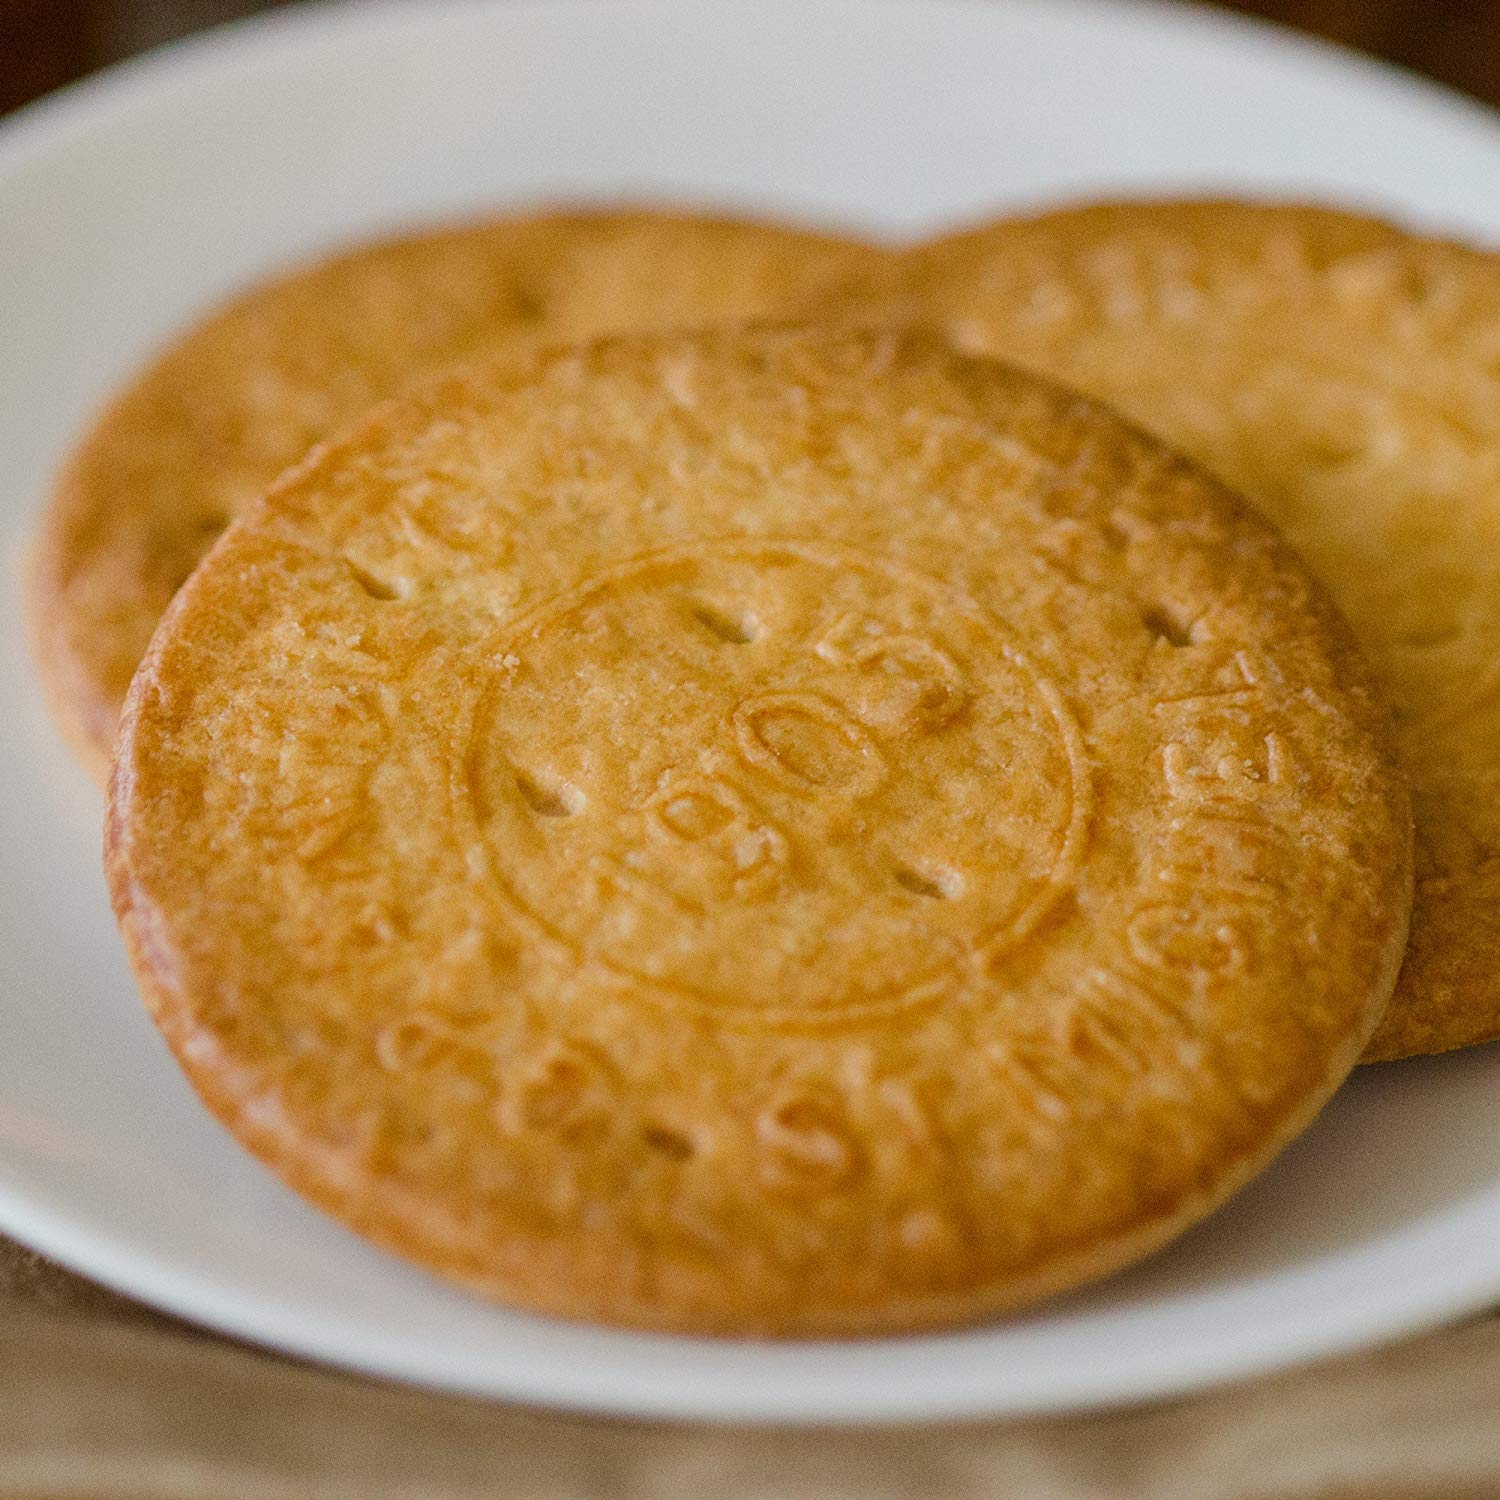 La Grande Galette French Butter Cookies - PACK OF 2 by LE CHEF PATISSIER (Image #2)